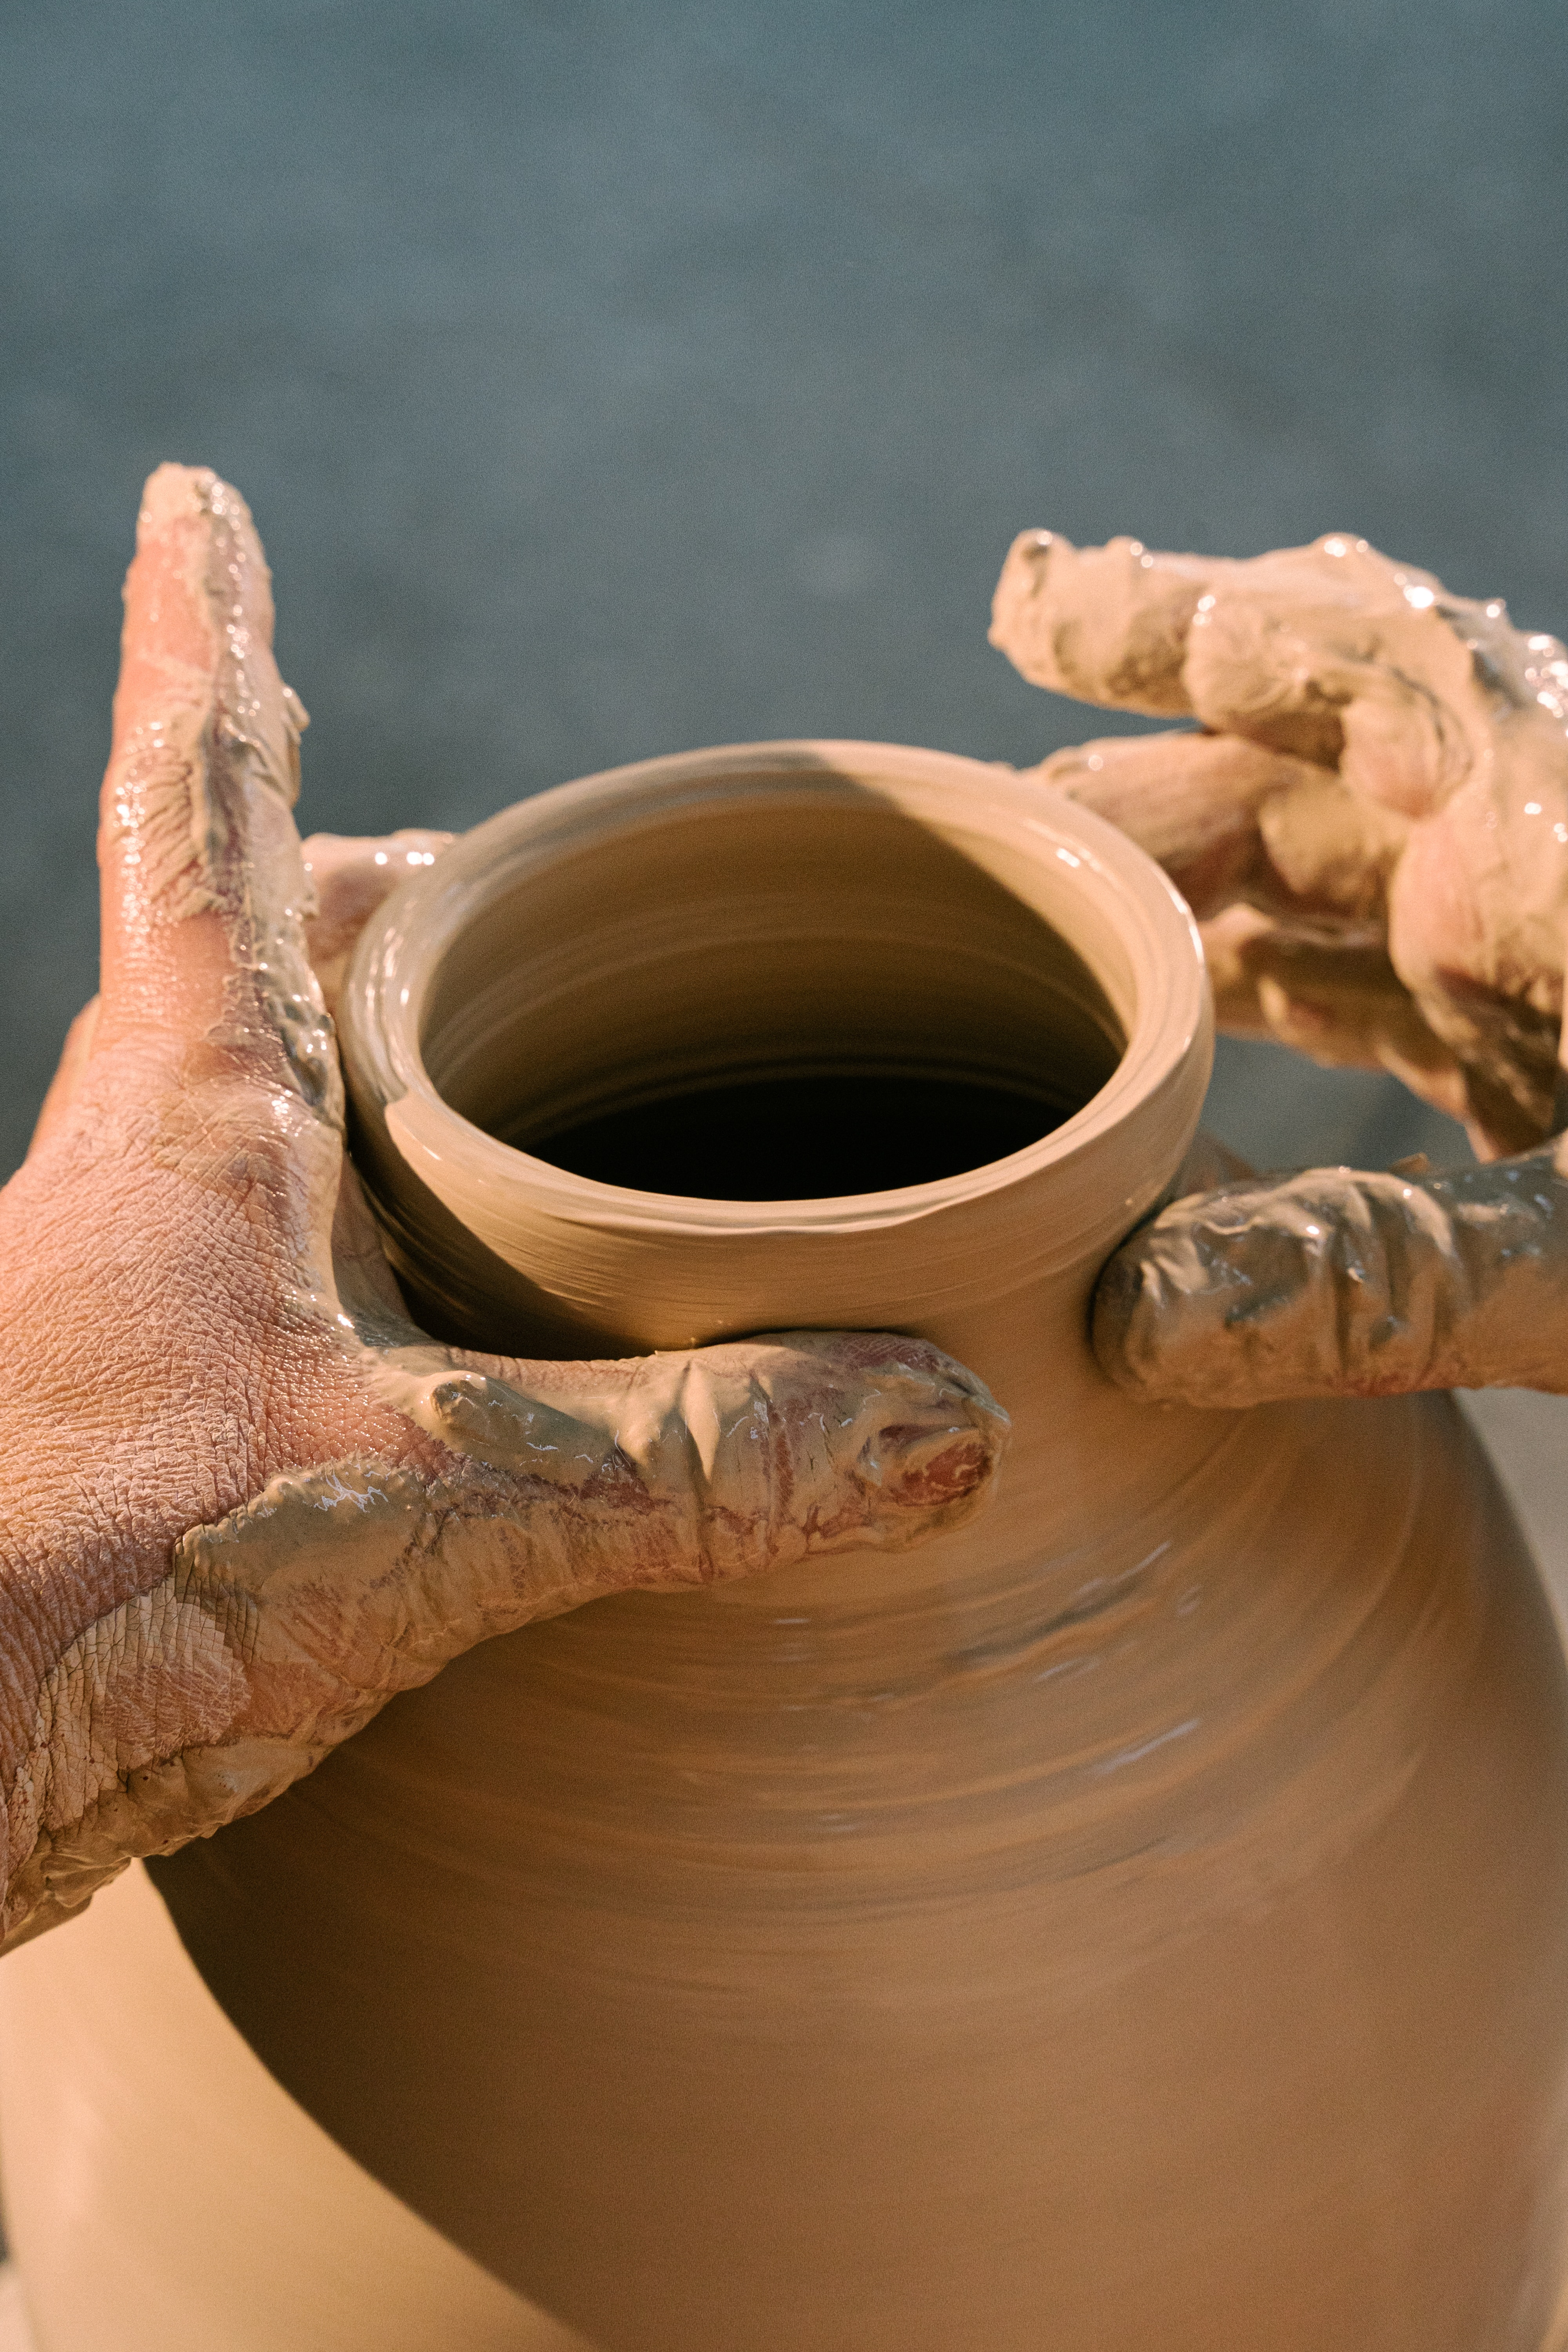 Hands shape the top of an unfinished clay vase